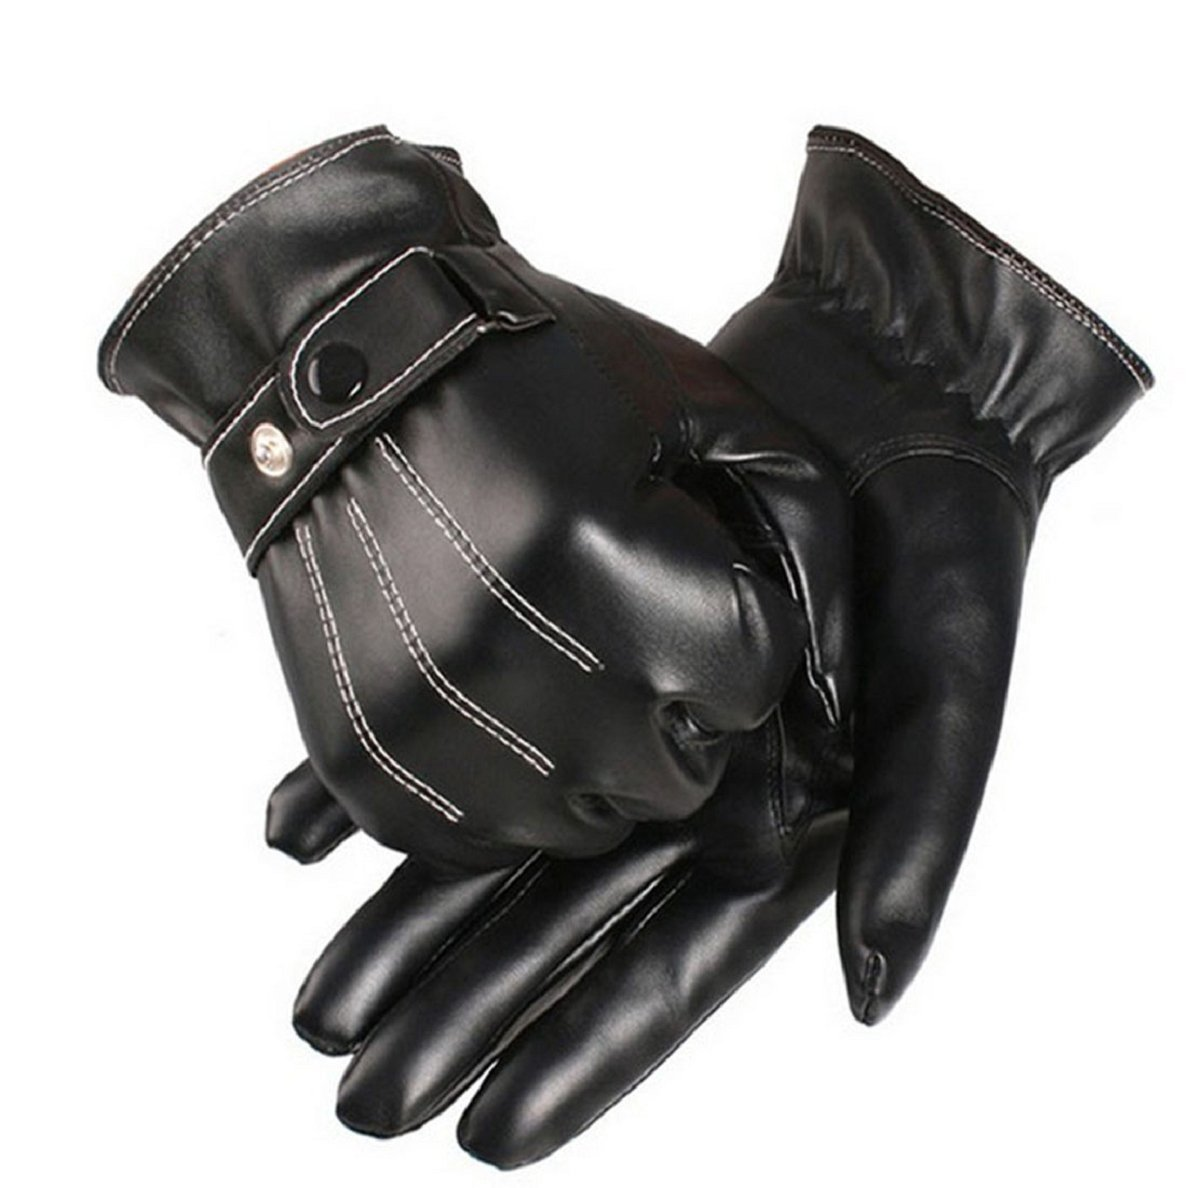 Tonsee Mens Luxurious PU Leather Winter Super Driving Warm Gloves Tonsee-jkqteb2354